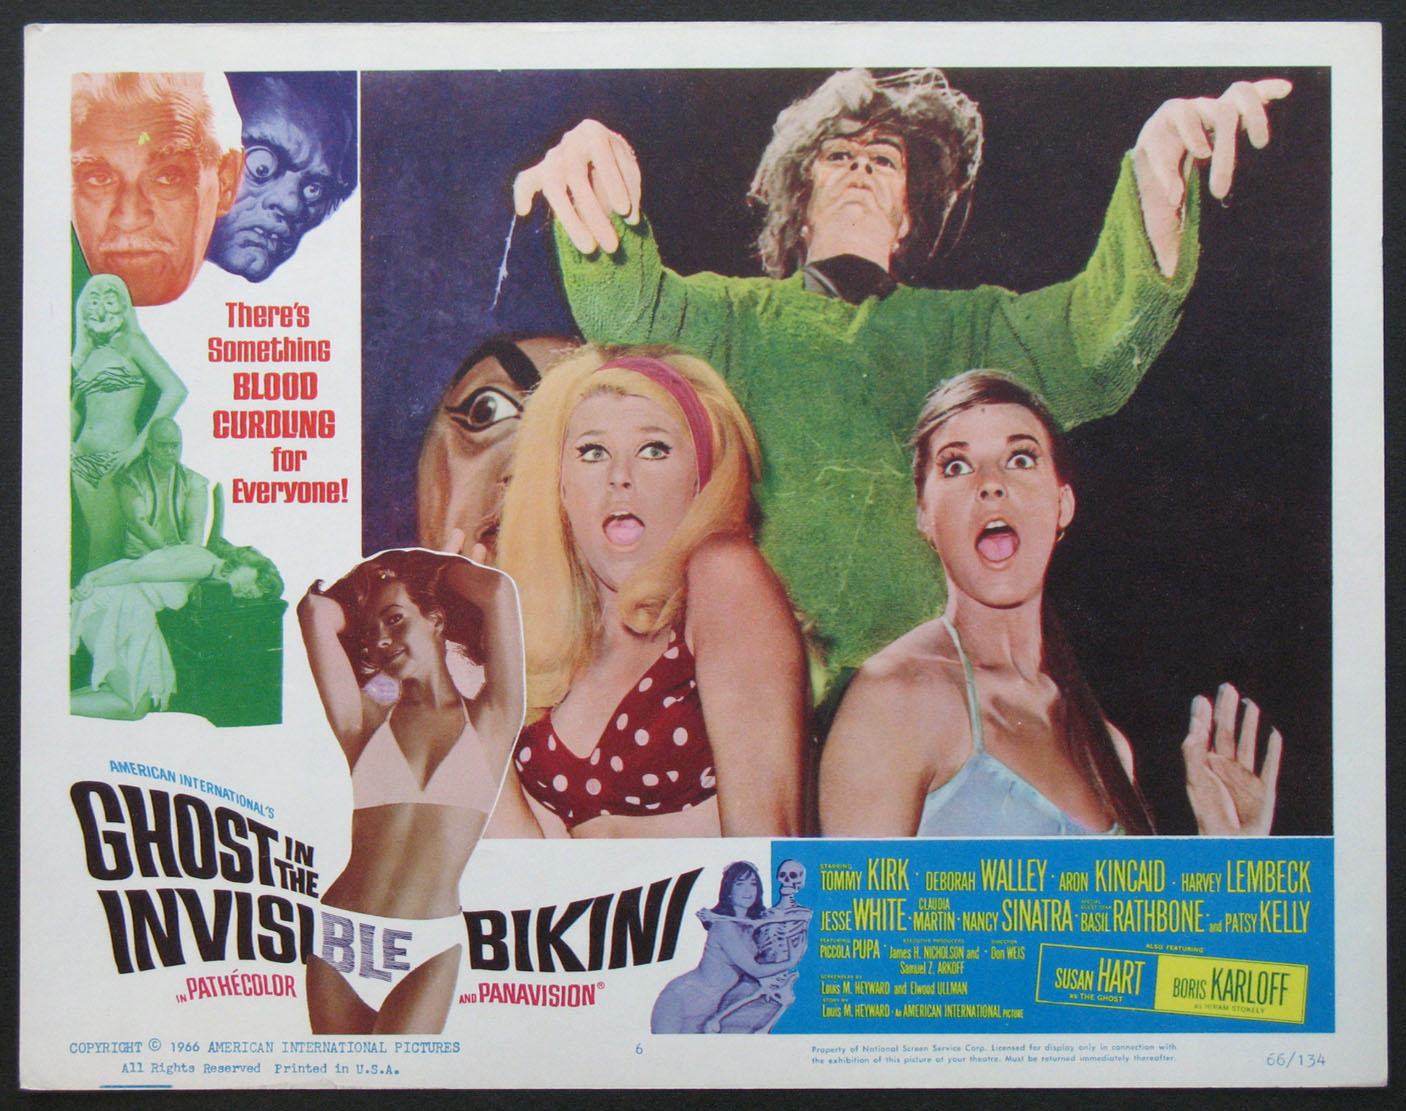 GHOST IN THE INVISIBLE BIKINI @ FilmPosters.com